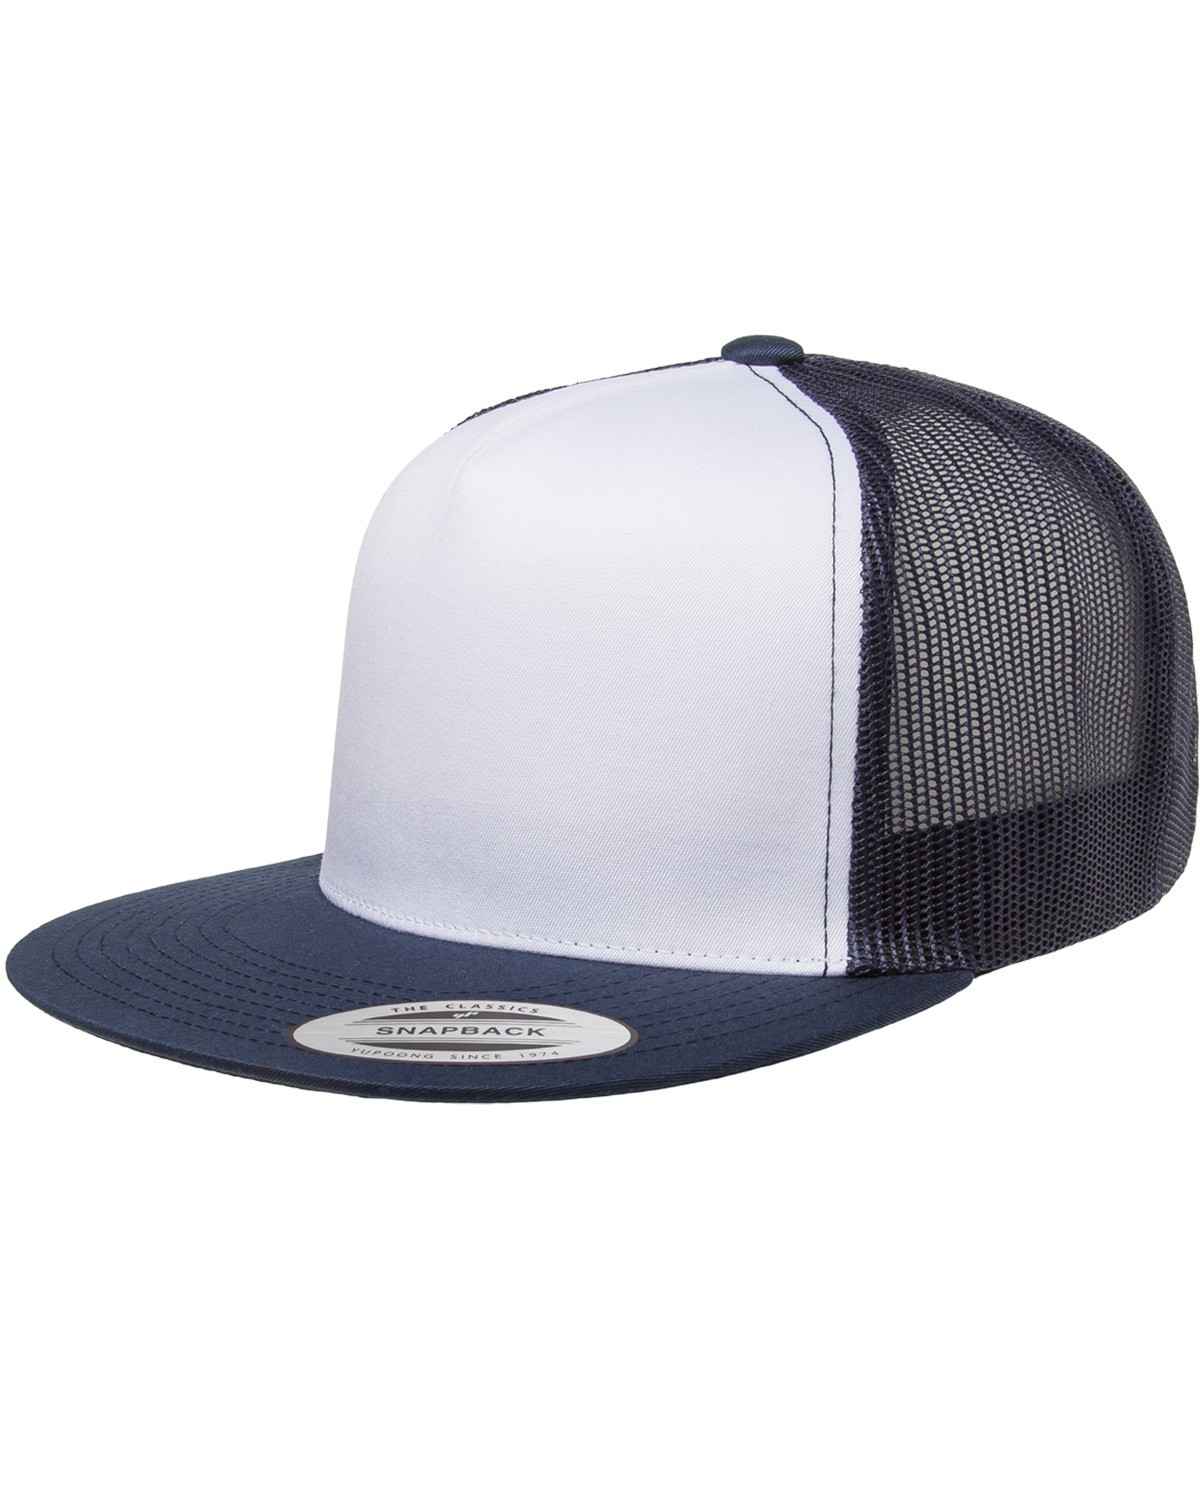 6006W Yupoong NAVY/WHT/NAVY